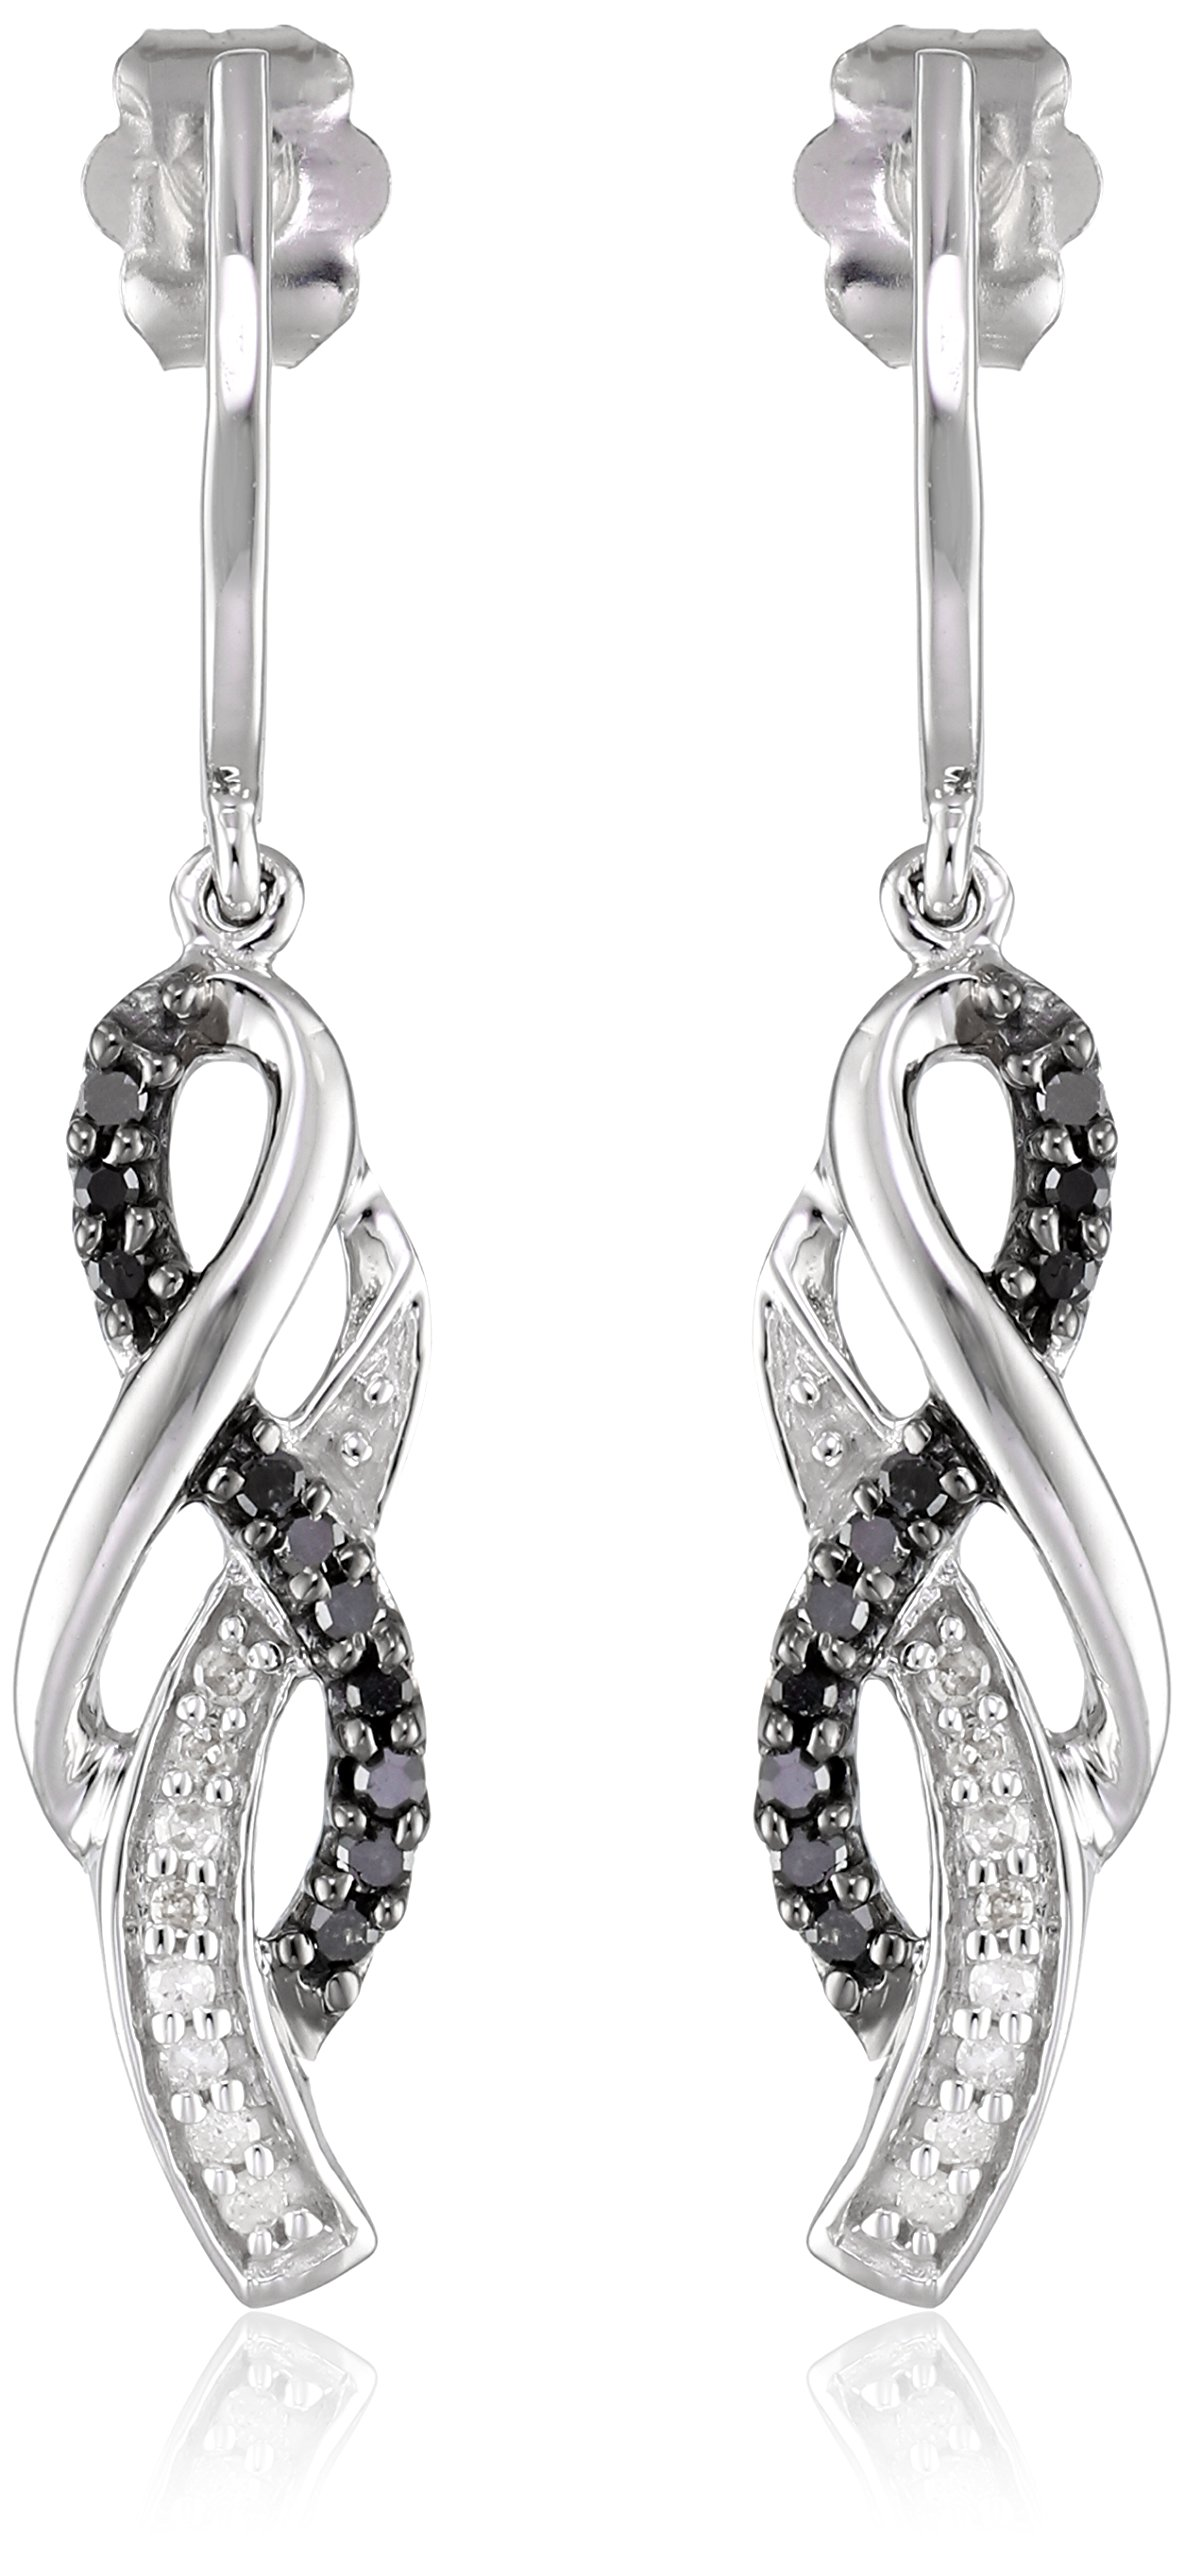 10K White Gold Black and White Diamond Infinity Earrings (1/4 cttw)